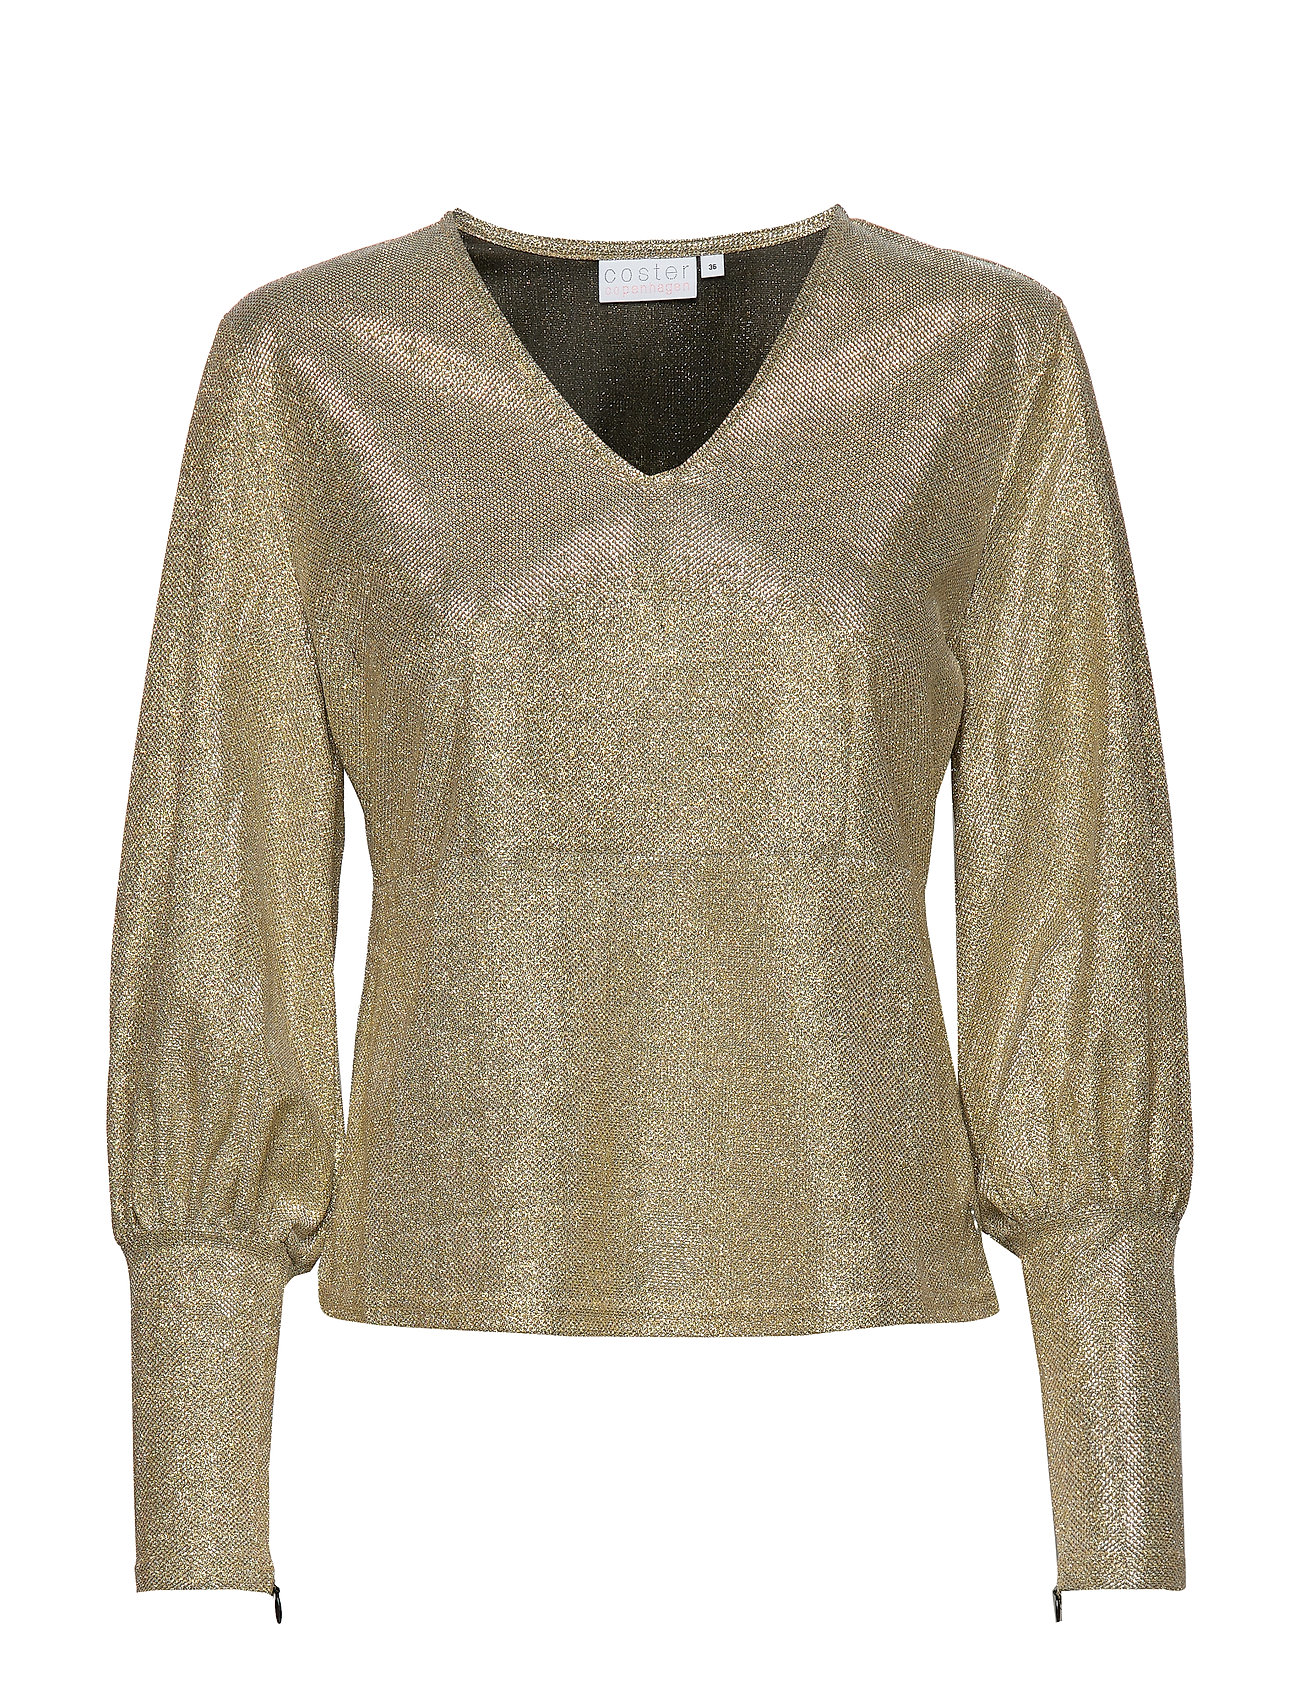 Coster Copenhagen Blouse in glitter - SILVER GREY